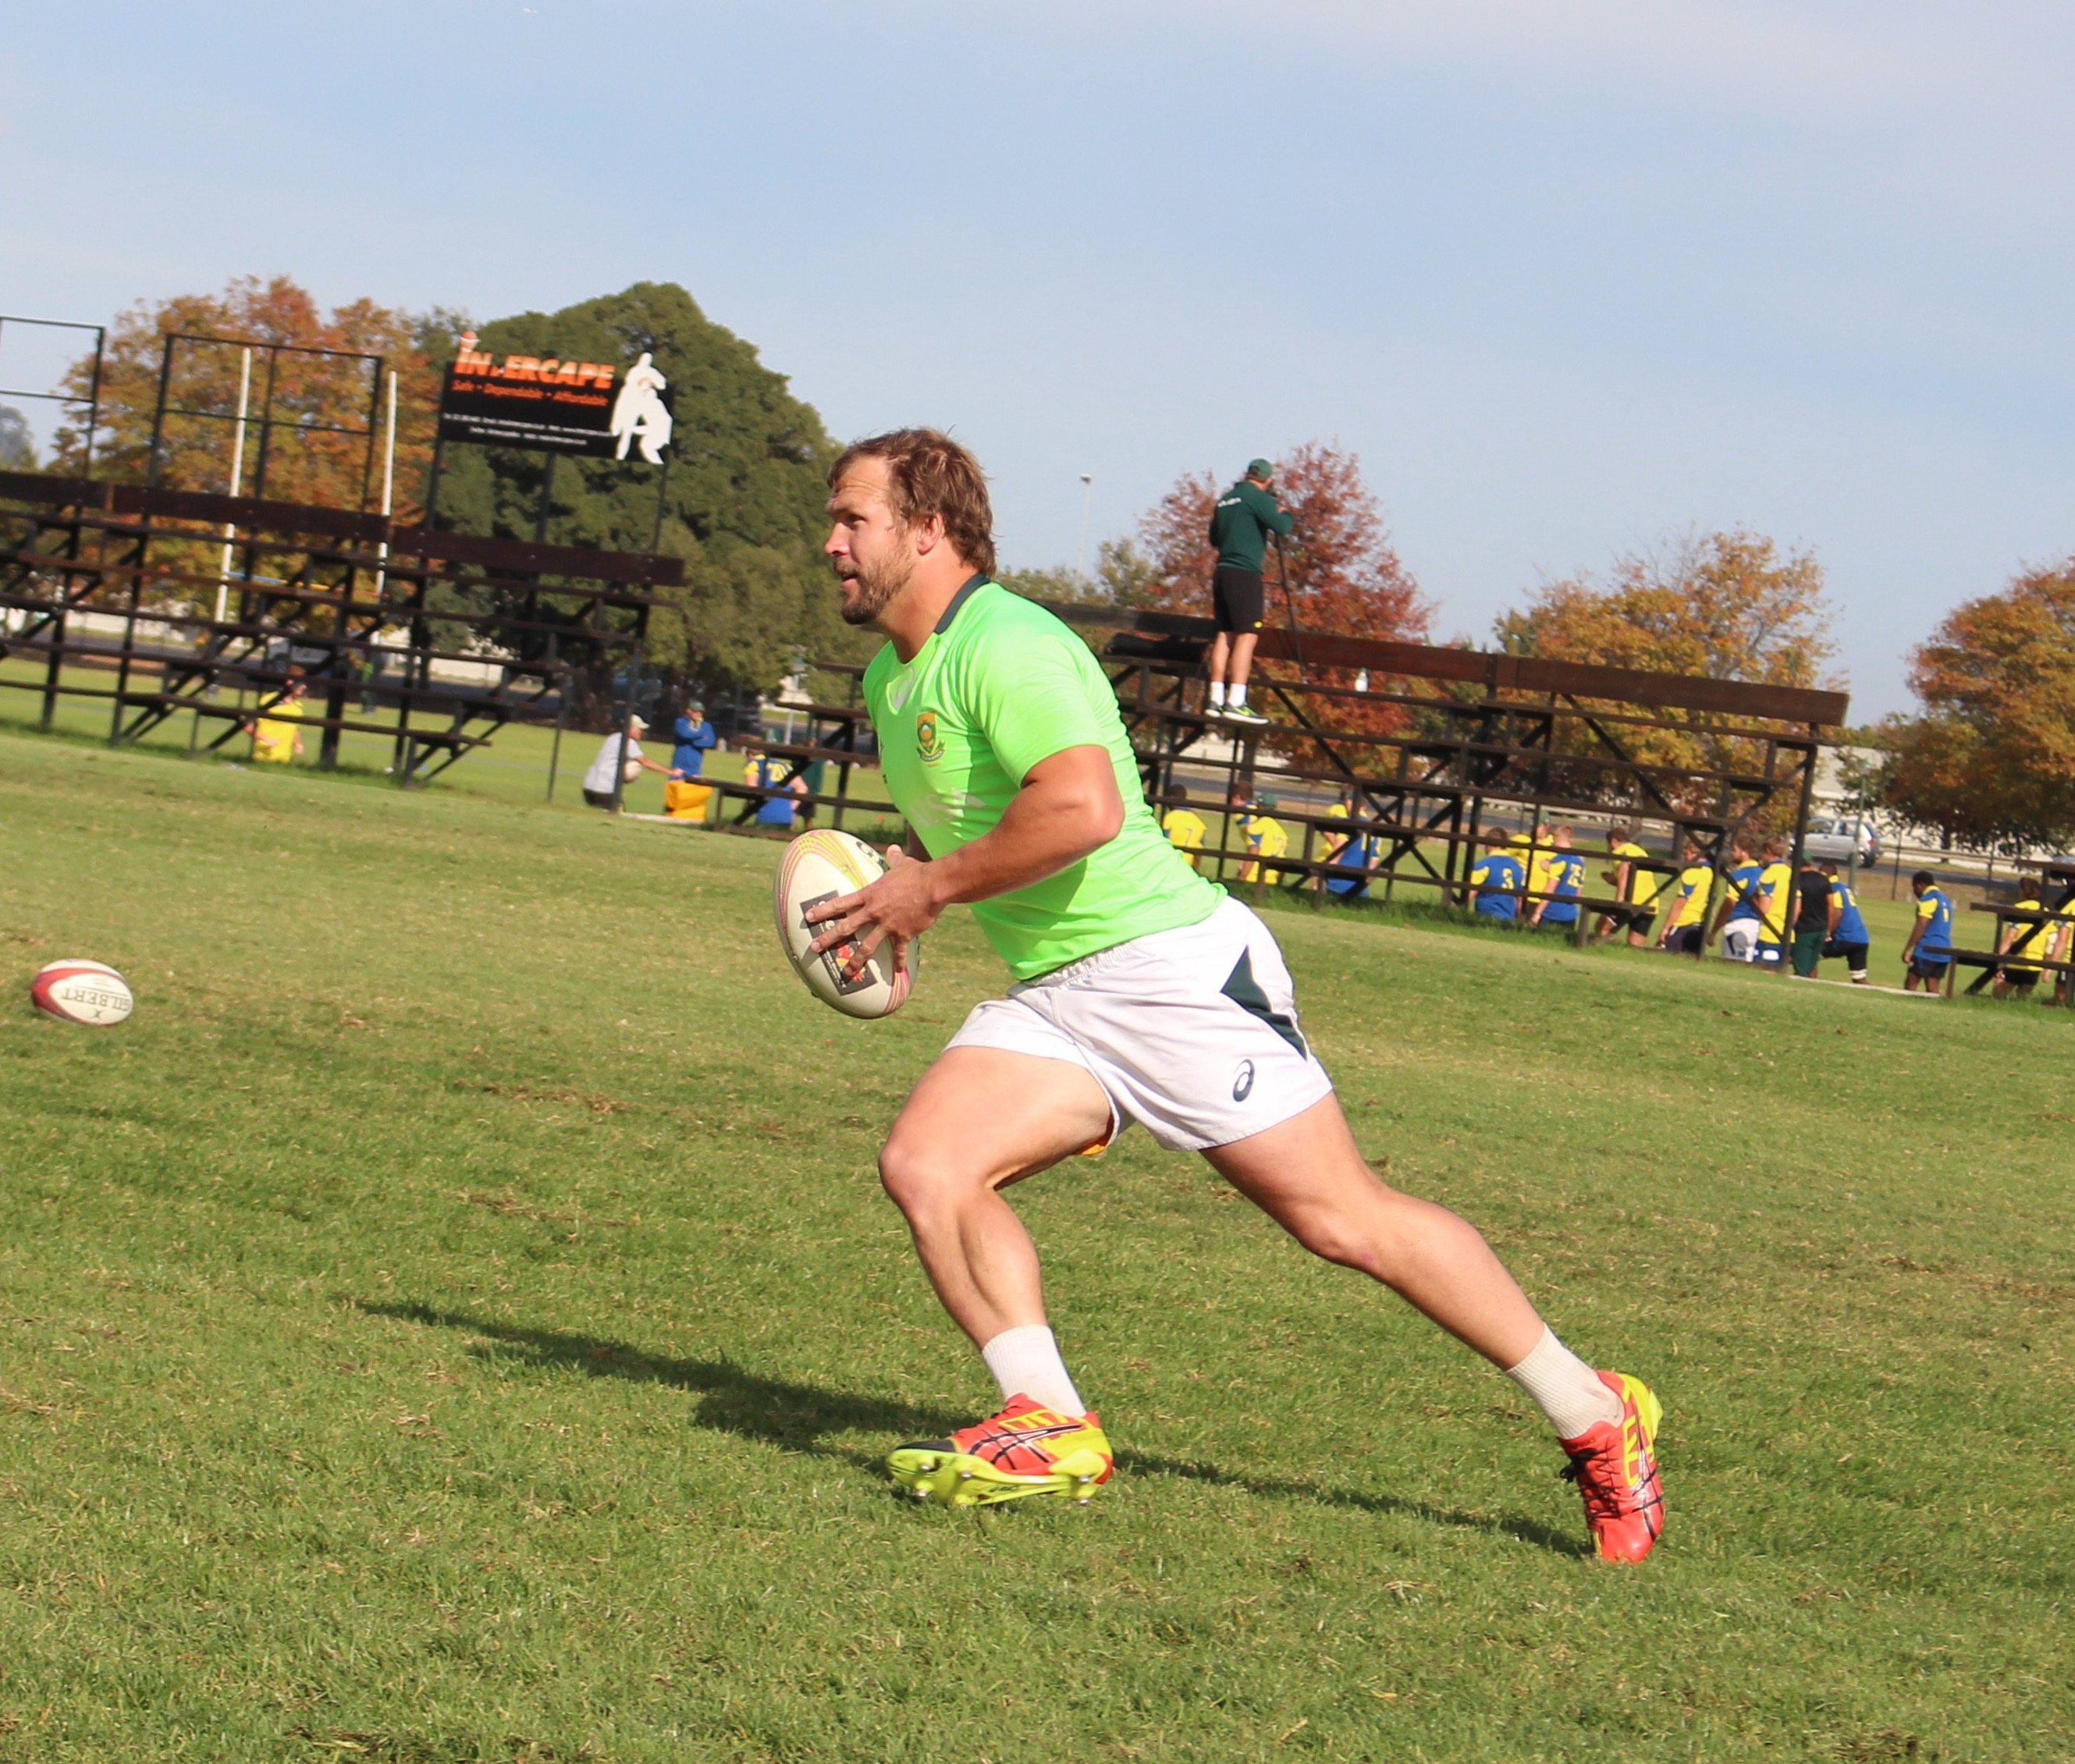 Frankie Horne running on the rugby field